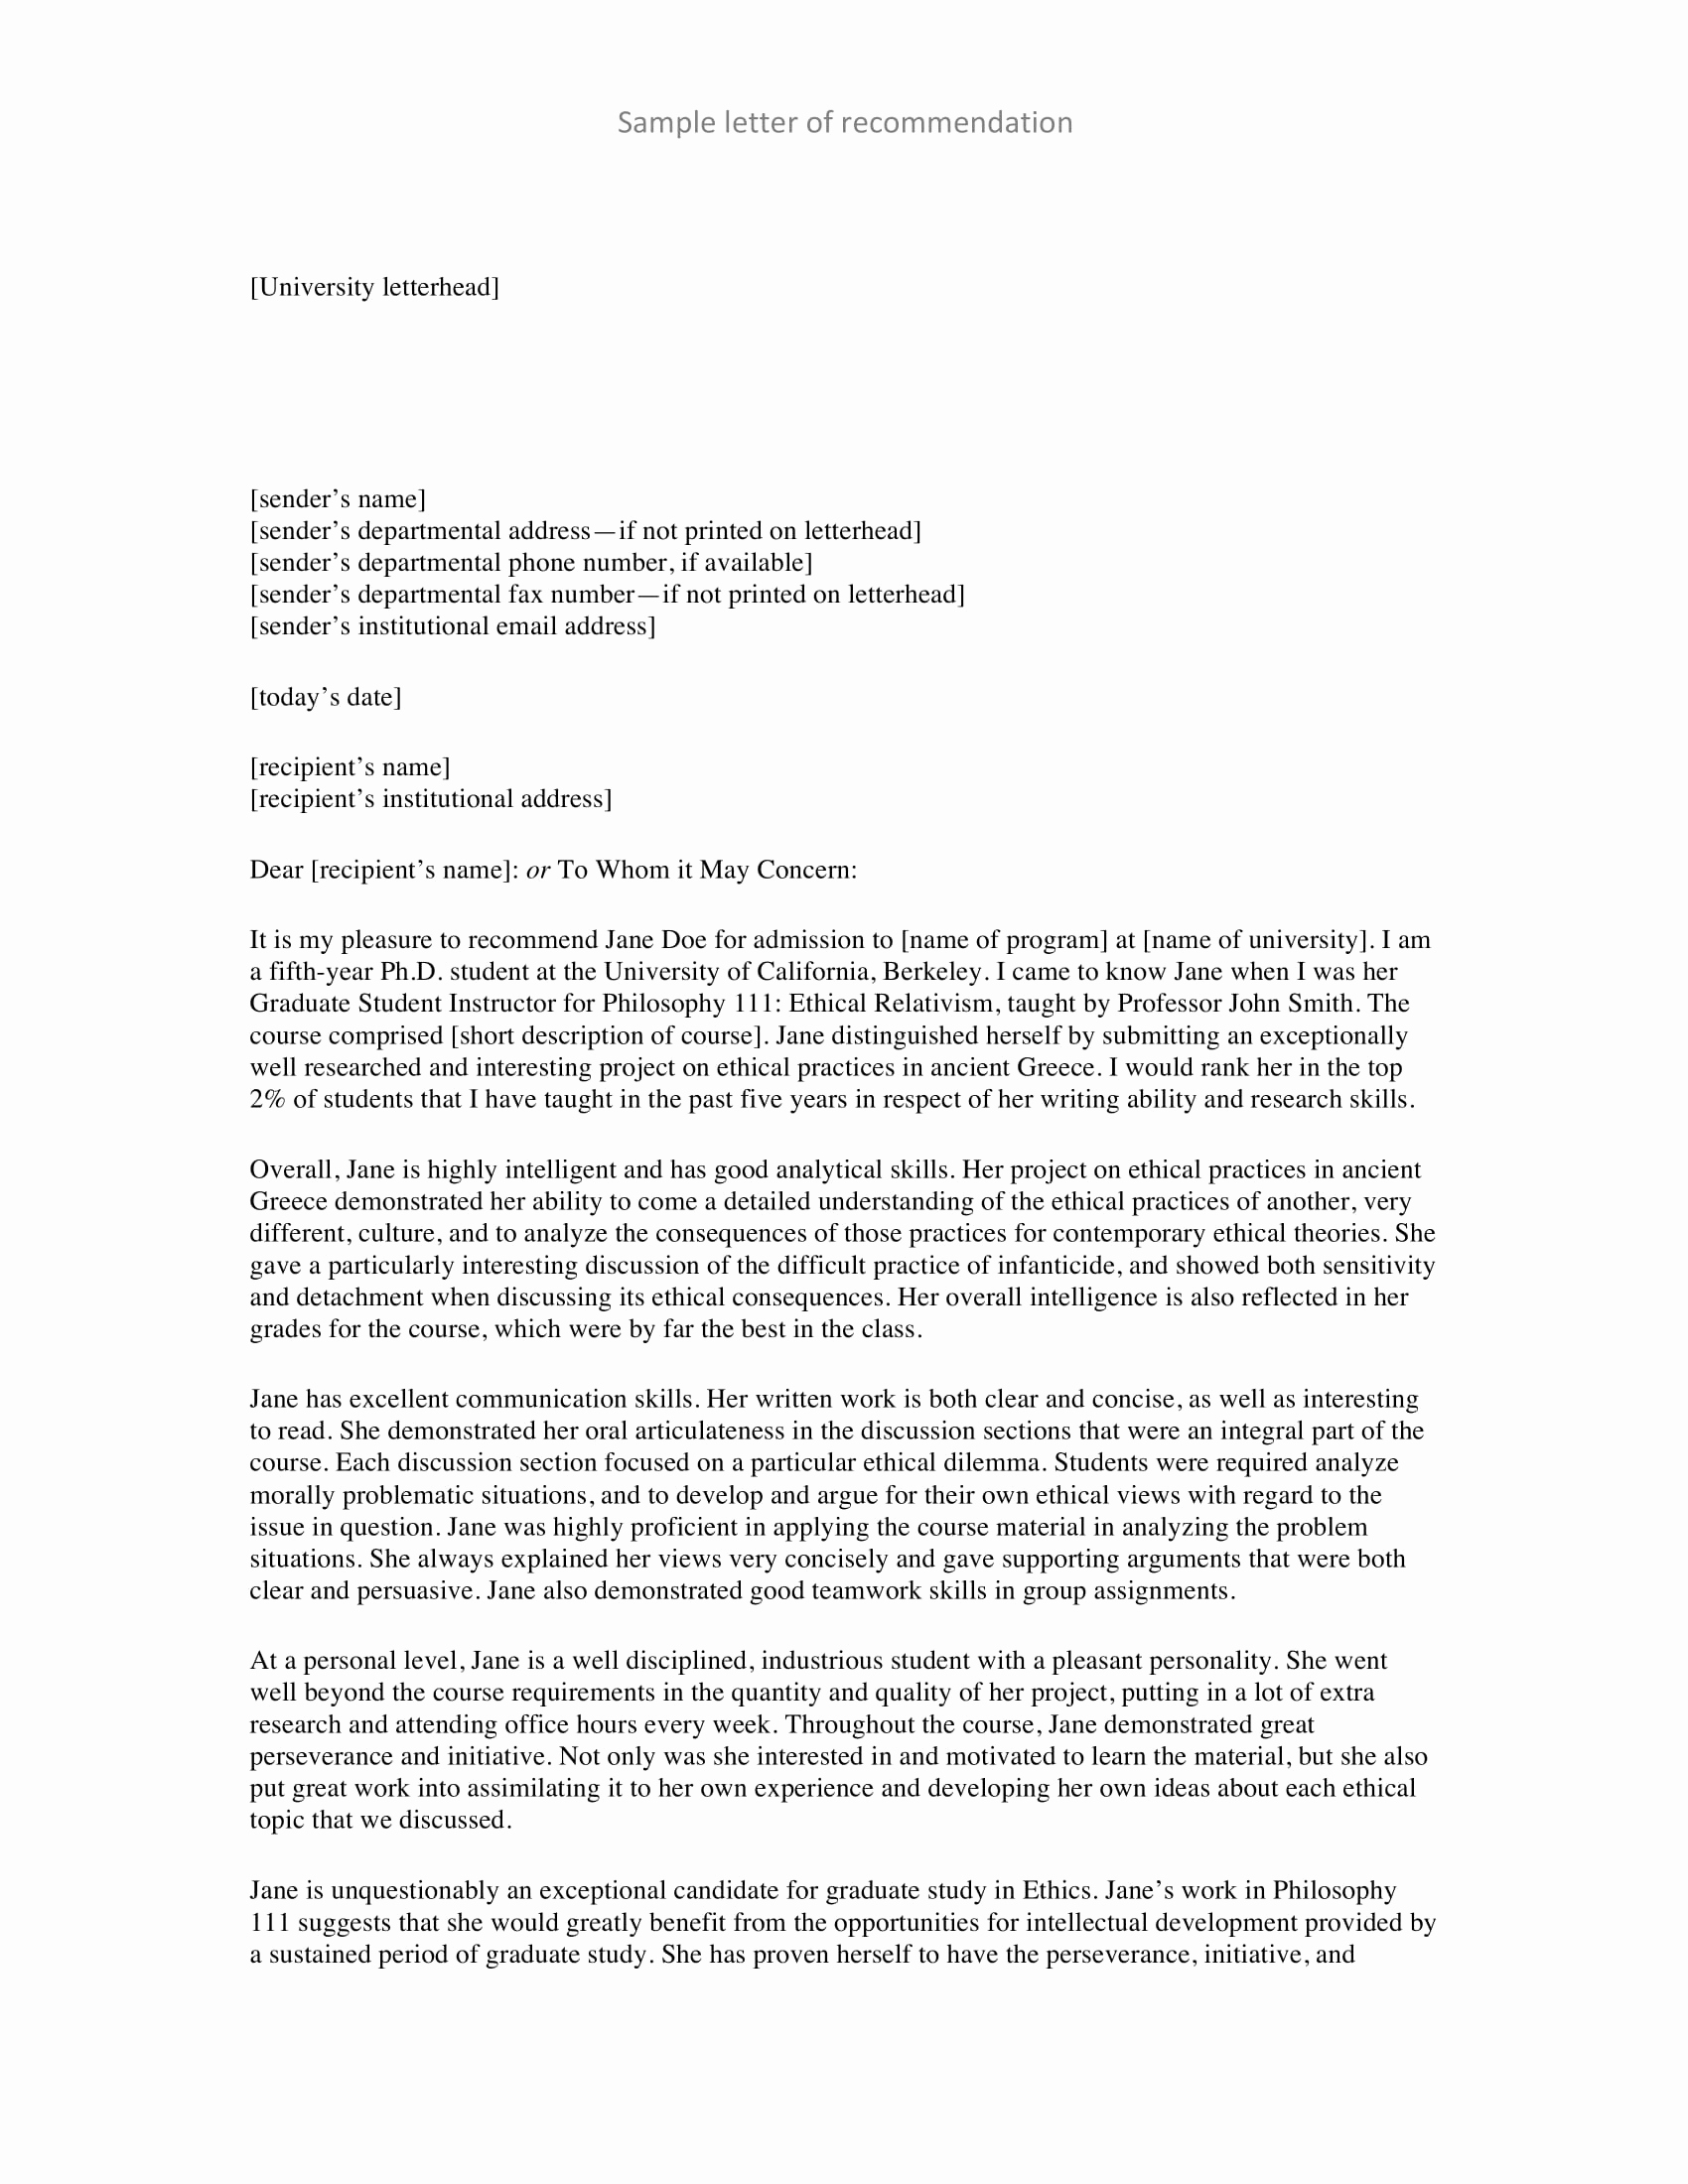 Personal Recommendation Letter Sample Awesome 10 Personal Re Mendation Letter Examples Pdf Word